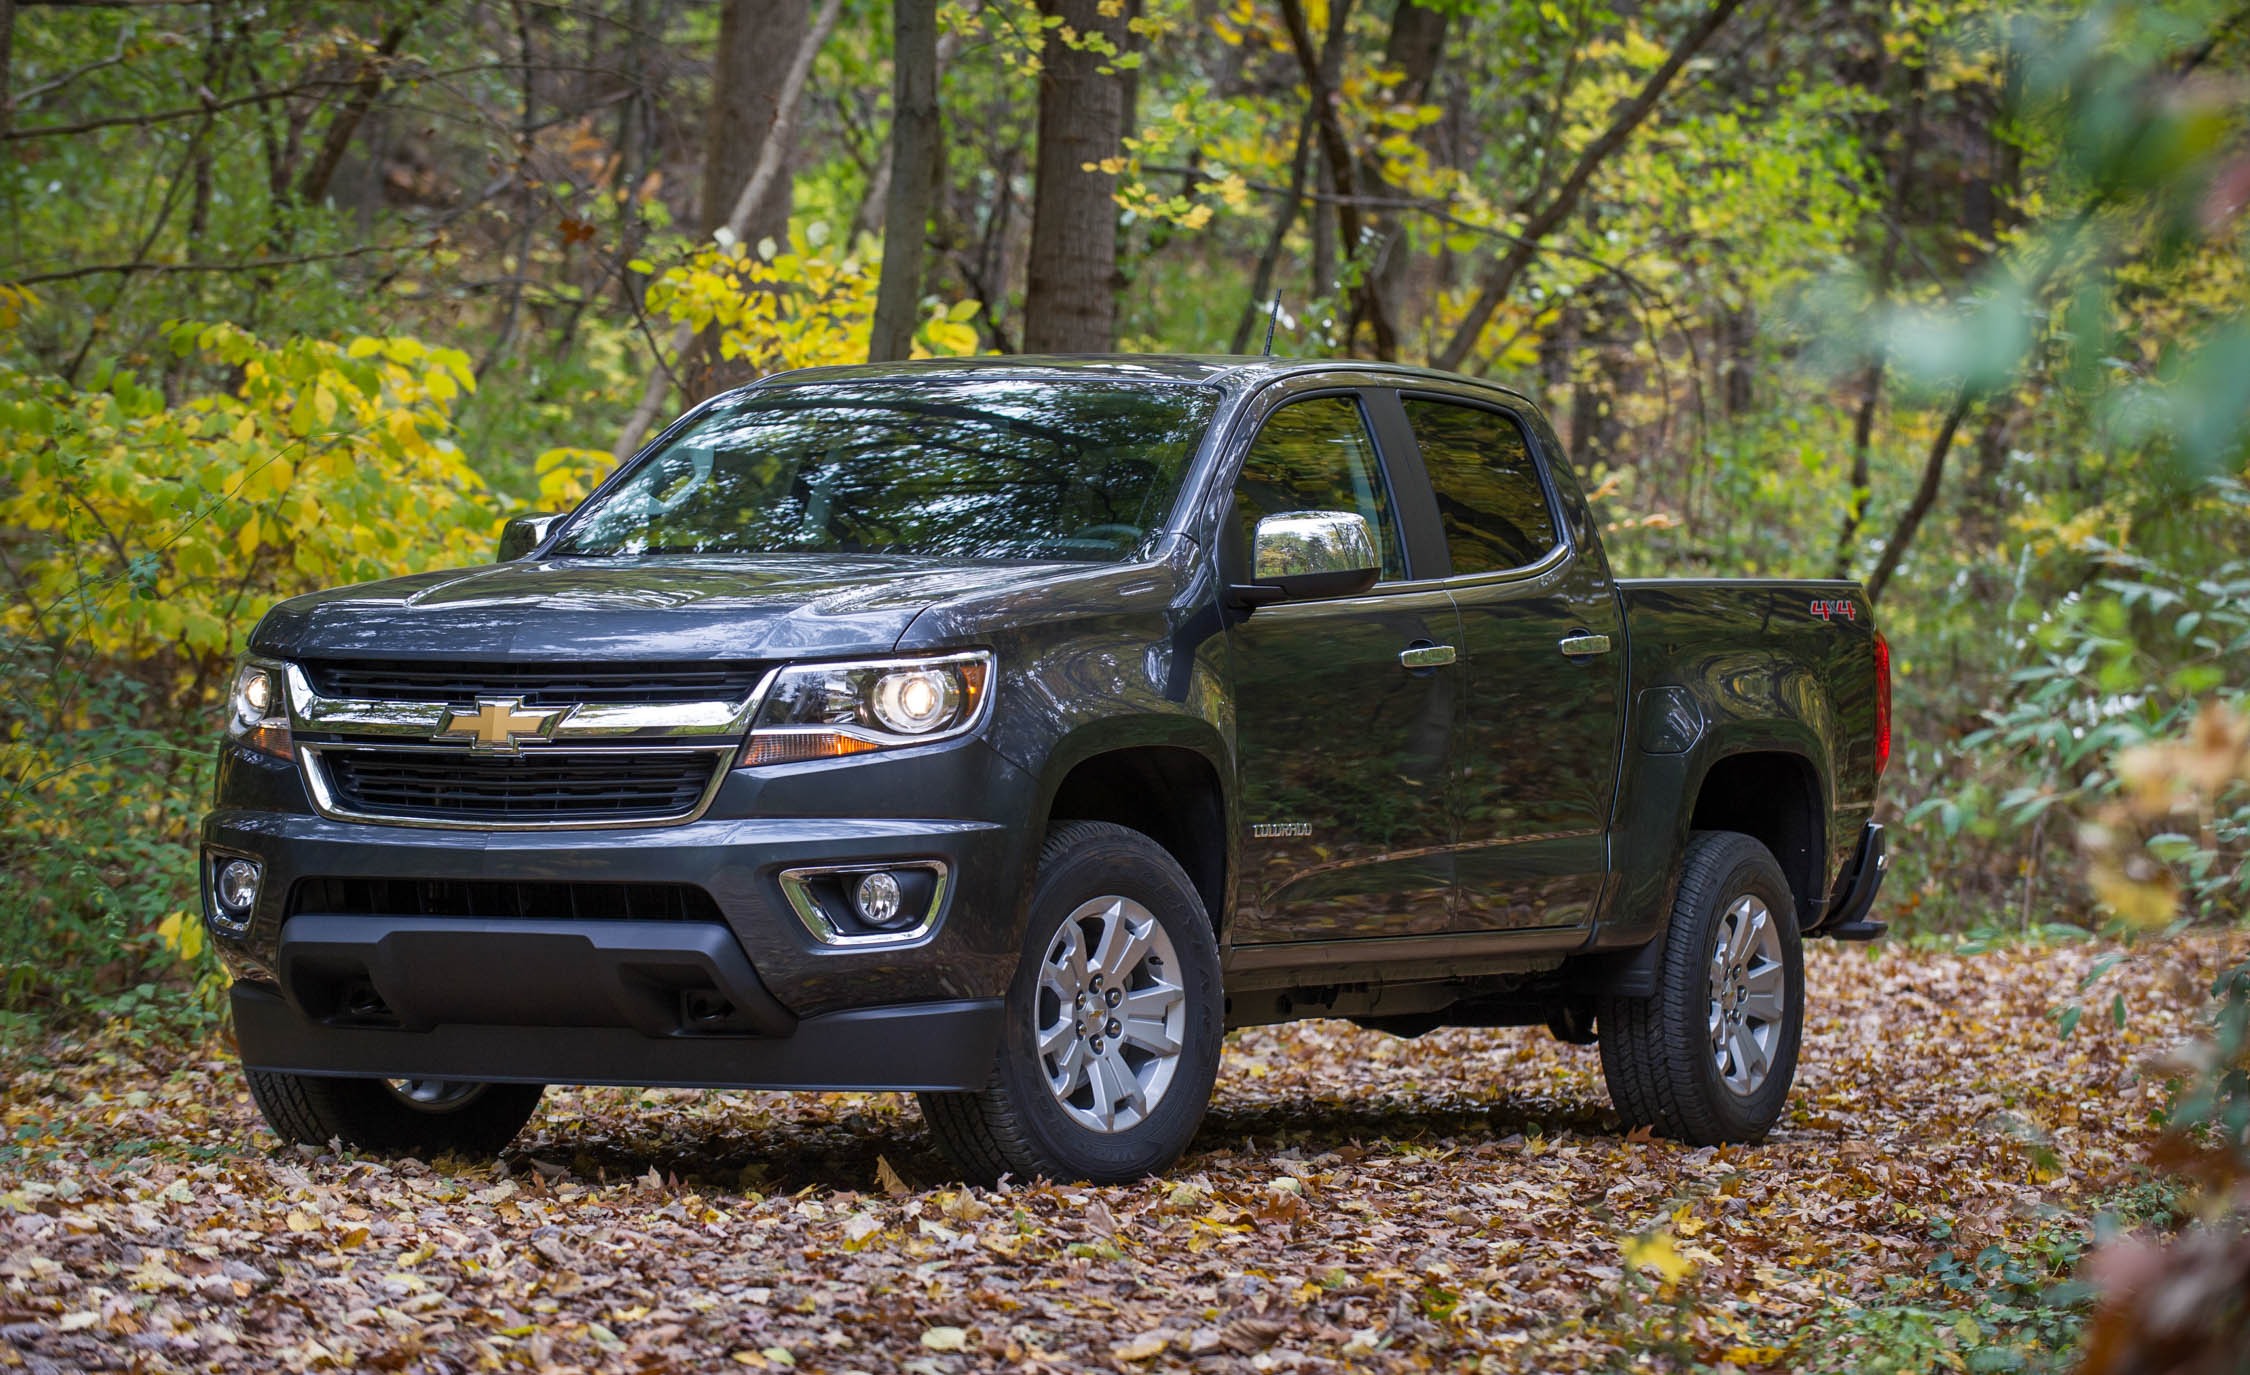 2017 Chevrolet Colorado Exterior Front And Side (Photo 3 of 41)